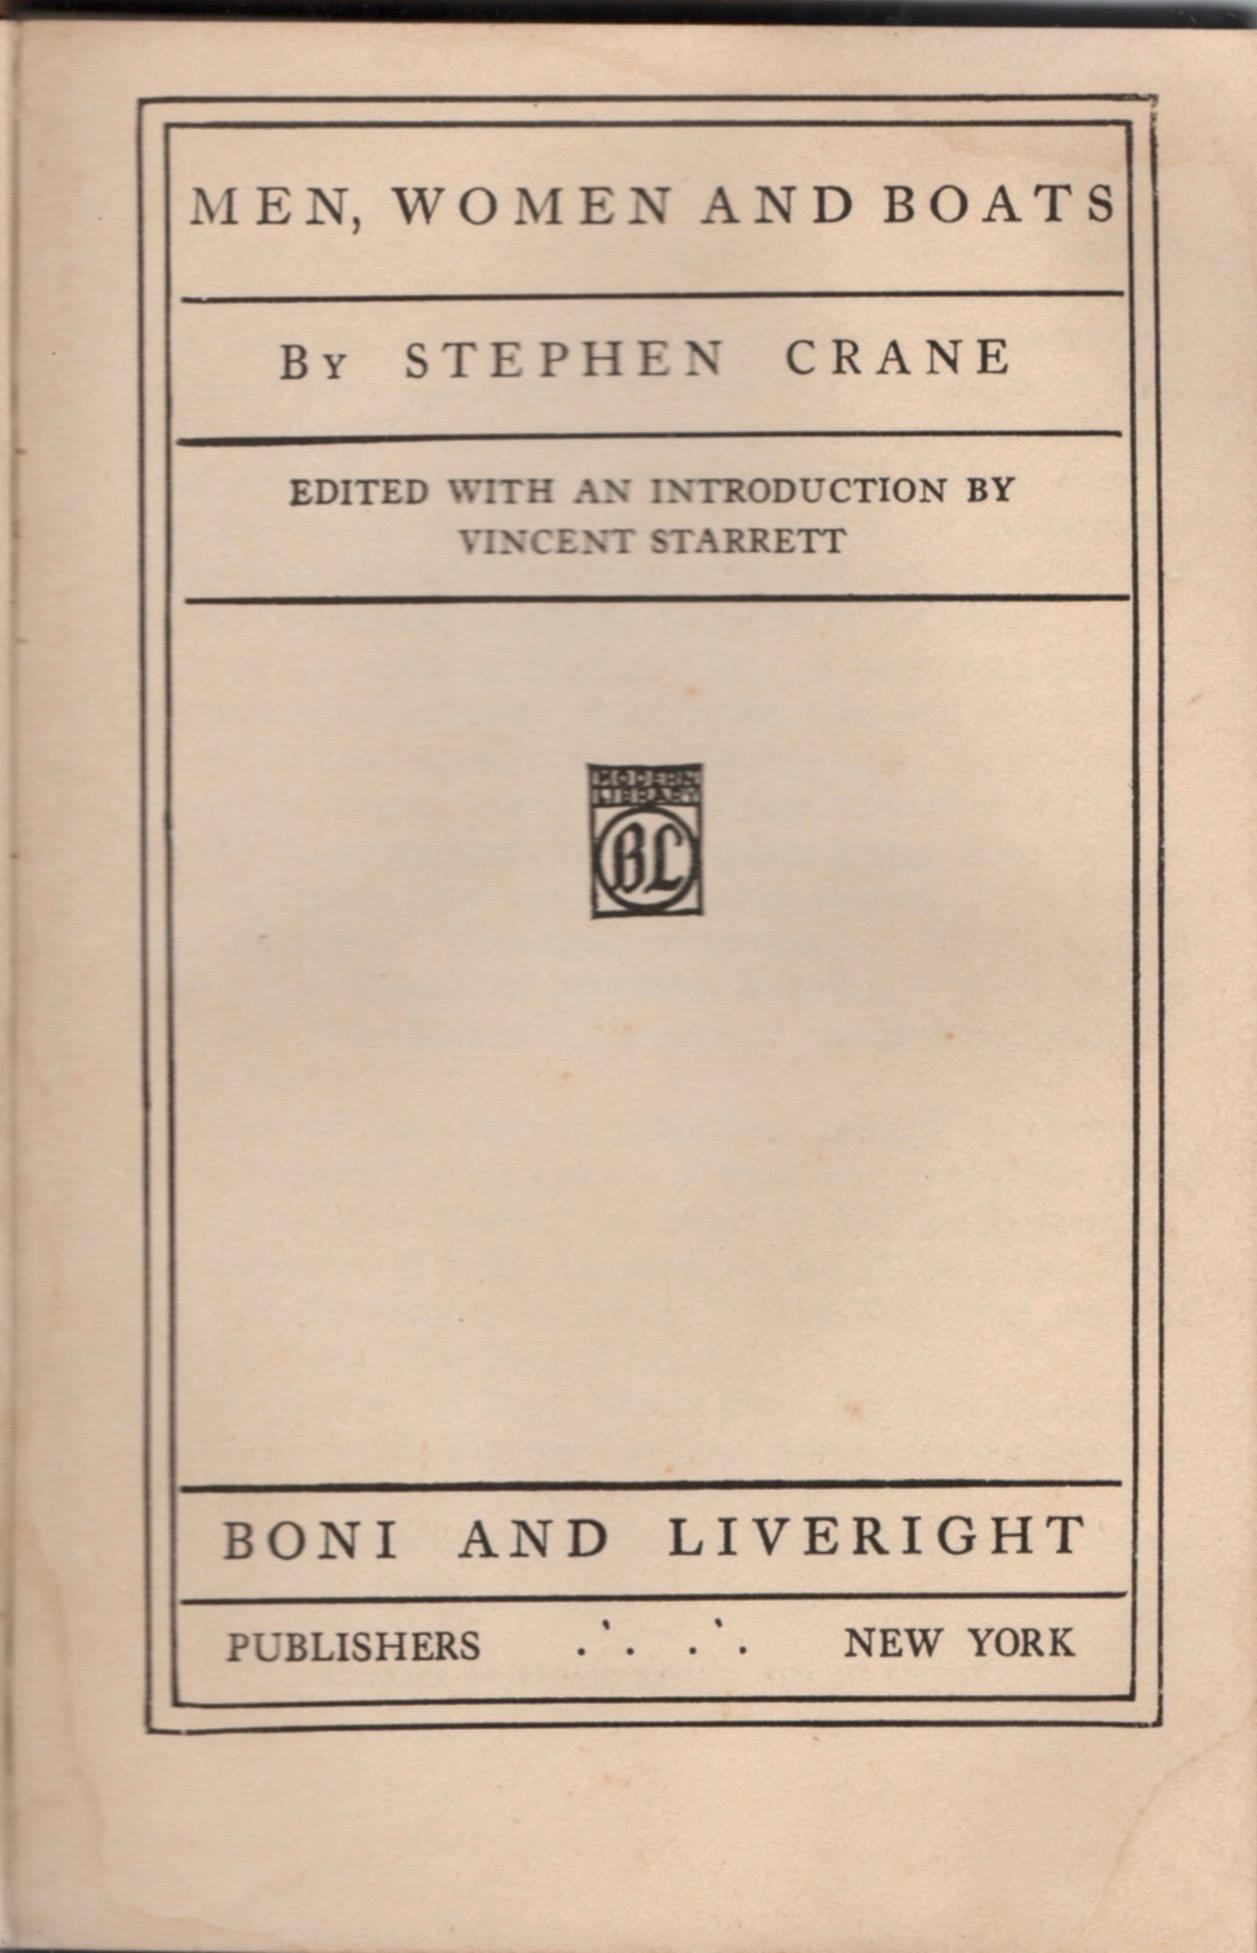 Men, Women and Boats  featured Stephen Crane short stories, with an introduction by Starrett. Starrett  promoted Crane and his work .